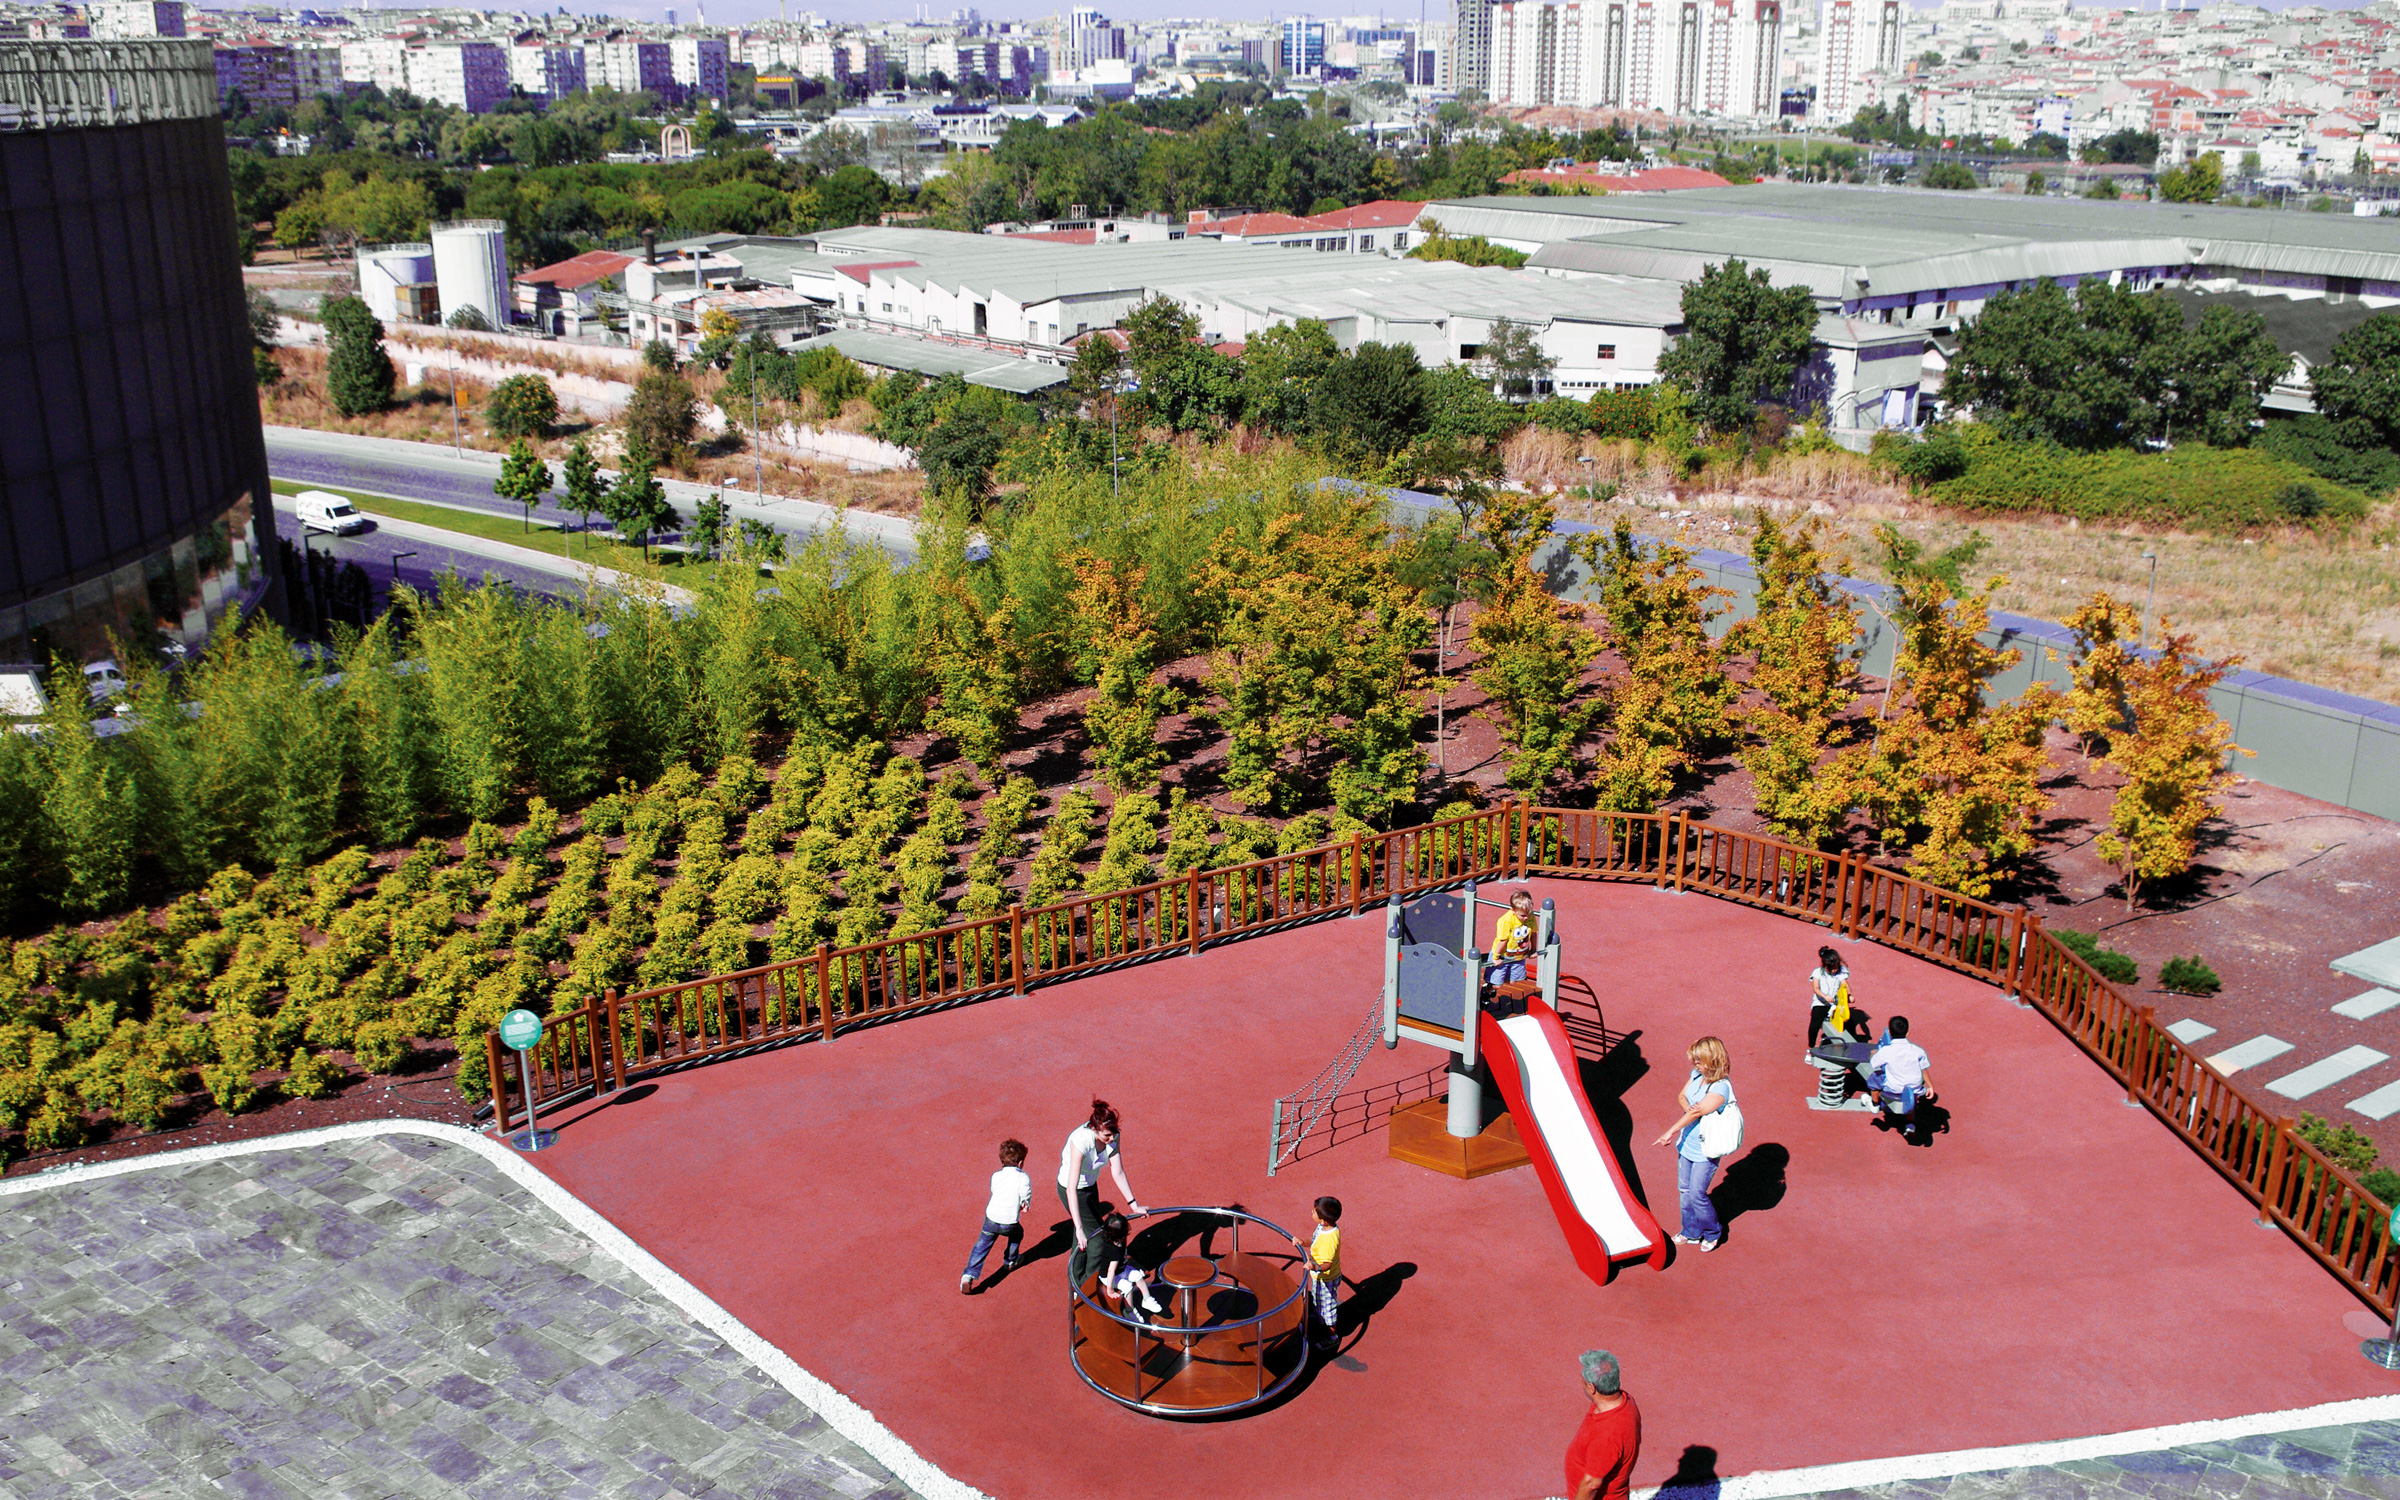 Playground for children on a roof